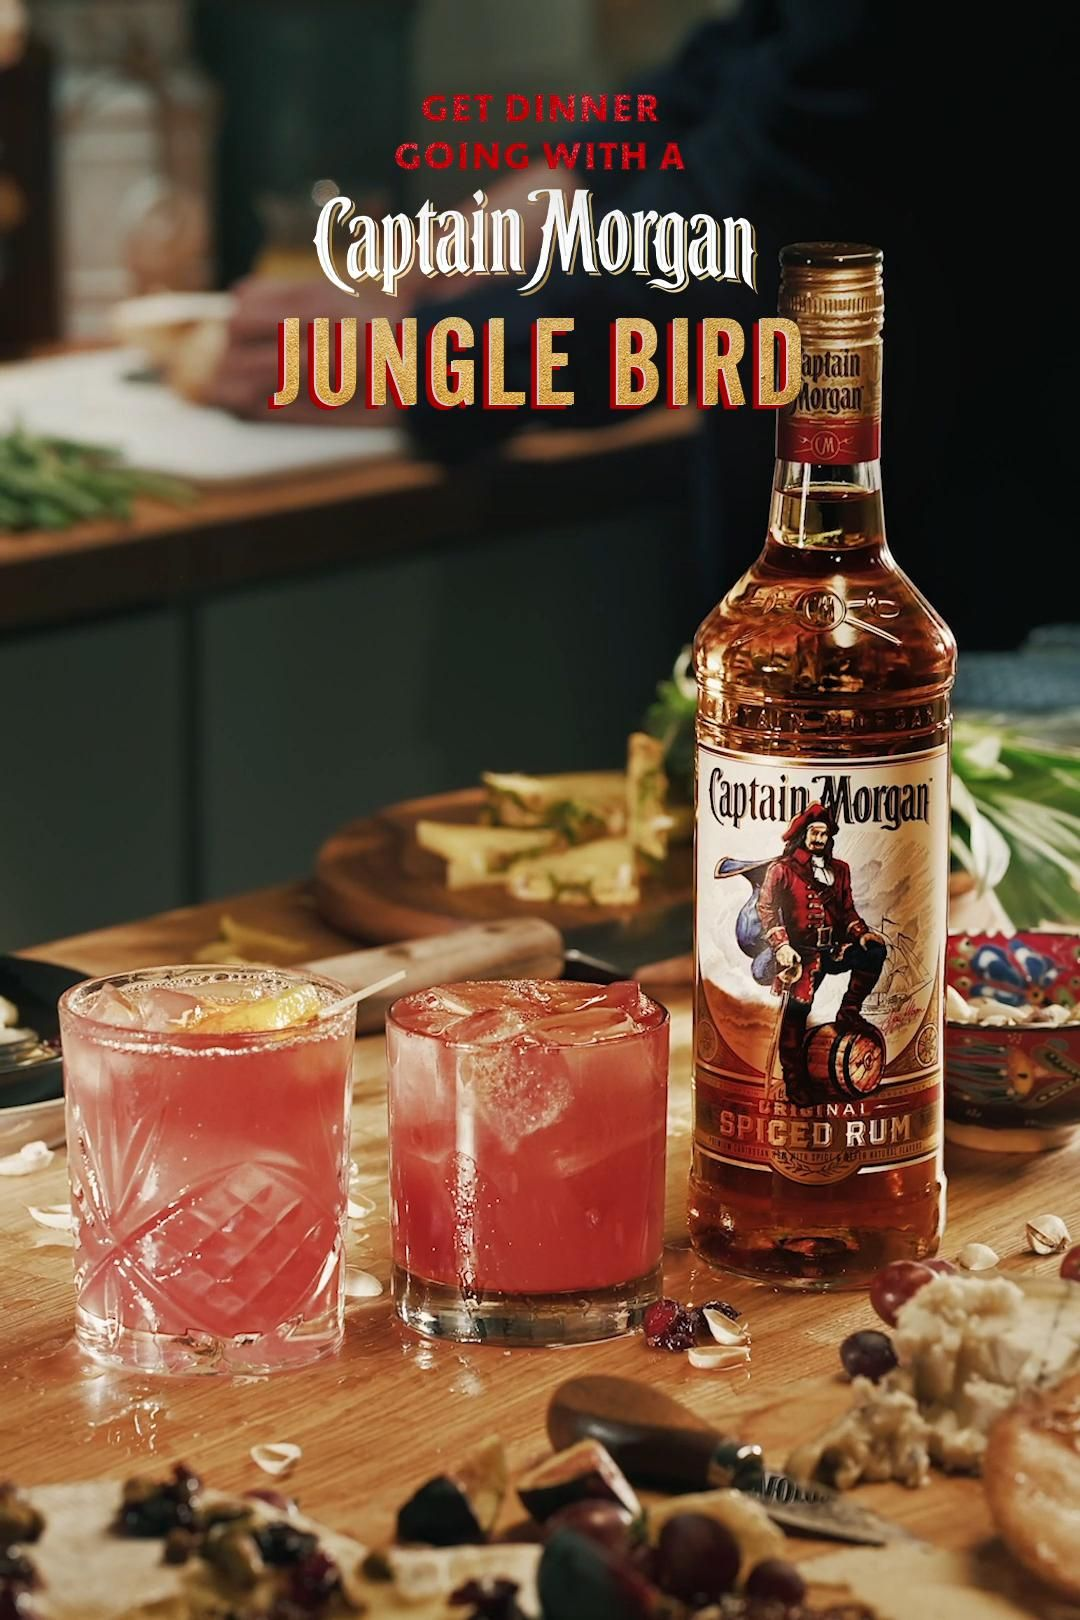 A Little Sweet A Little Bitter And Little Spiced Our Jungle Bird Cocktail Is Like A Good Playlist Video Alcohol Drink Recipes Boozy Drinks Cocktail Drinks Recipes